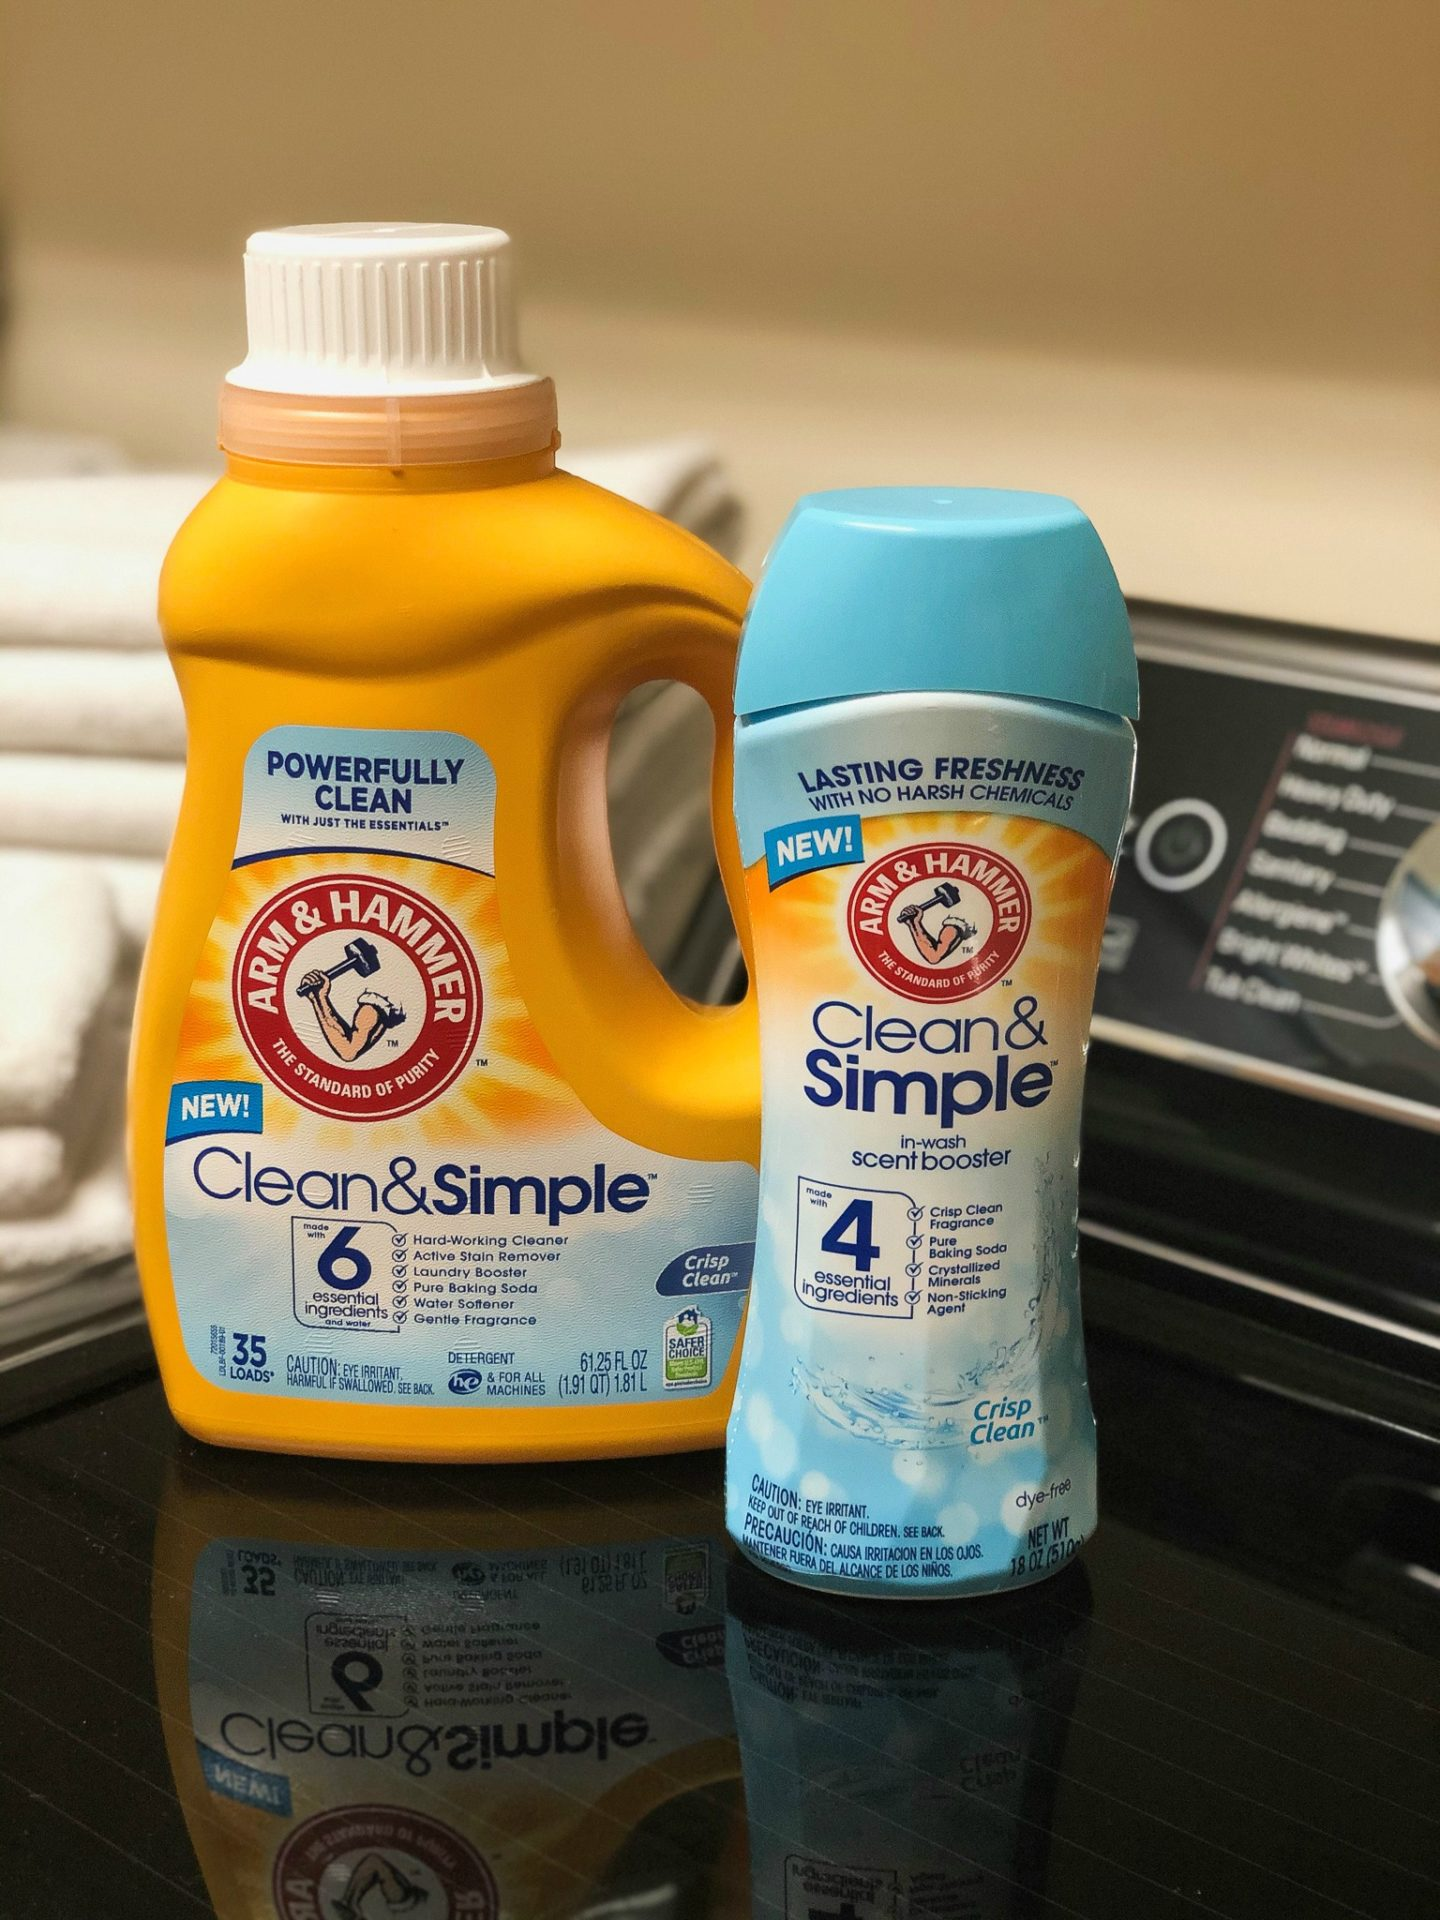 Save On ARM & HAMMER™ Clean & Simple™ Liquid Laundry Detergent And In-Wash Scent Booster - Get A Powerful Clean At A Smart Low Price 1